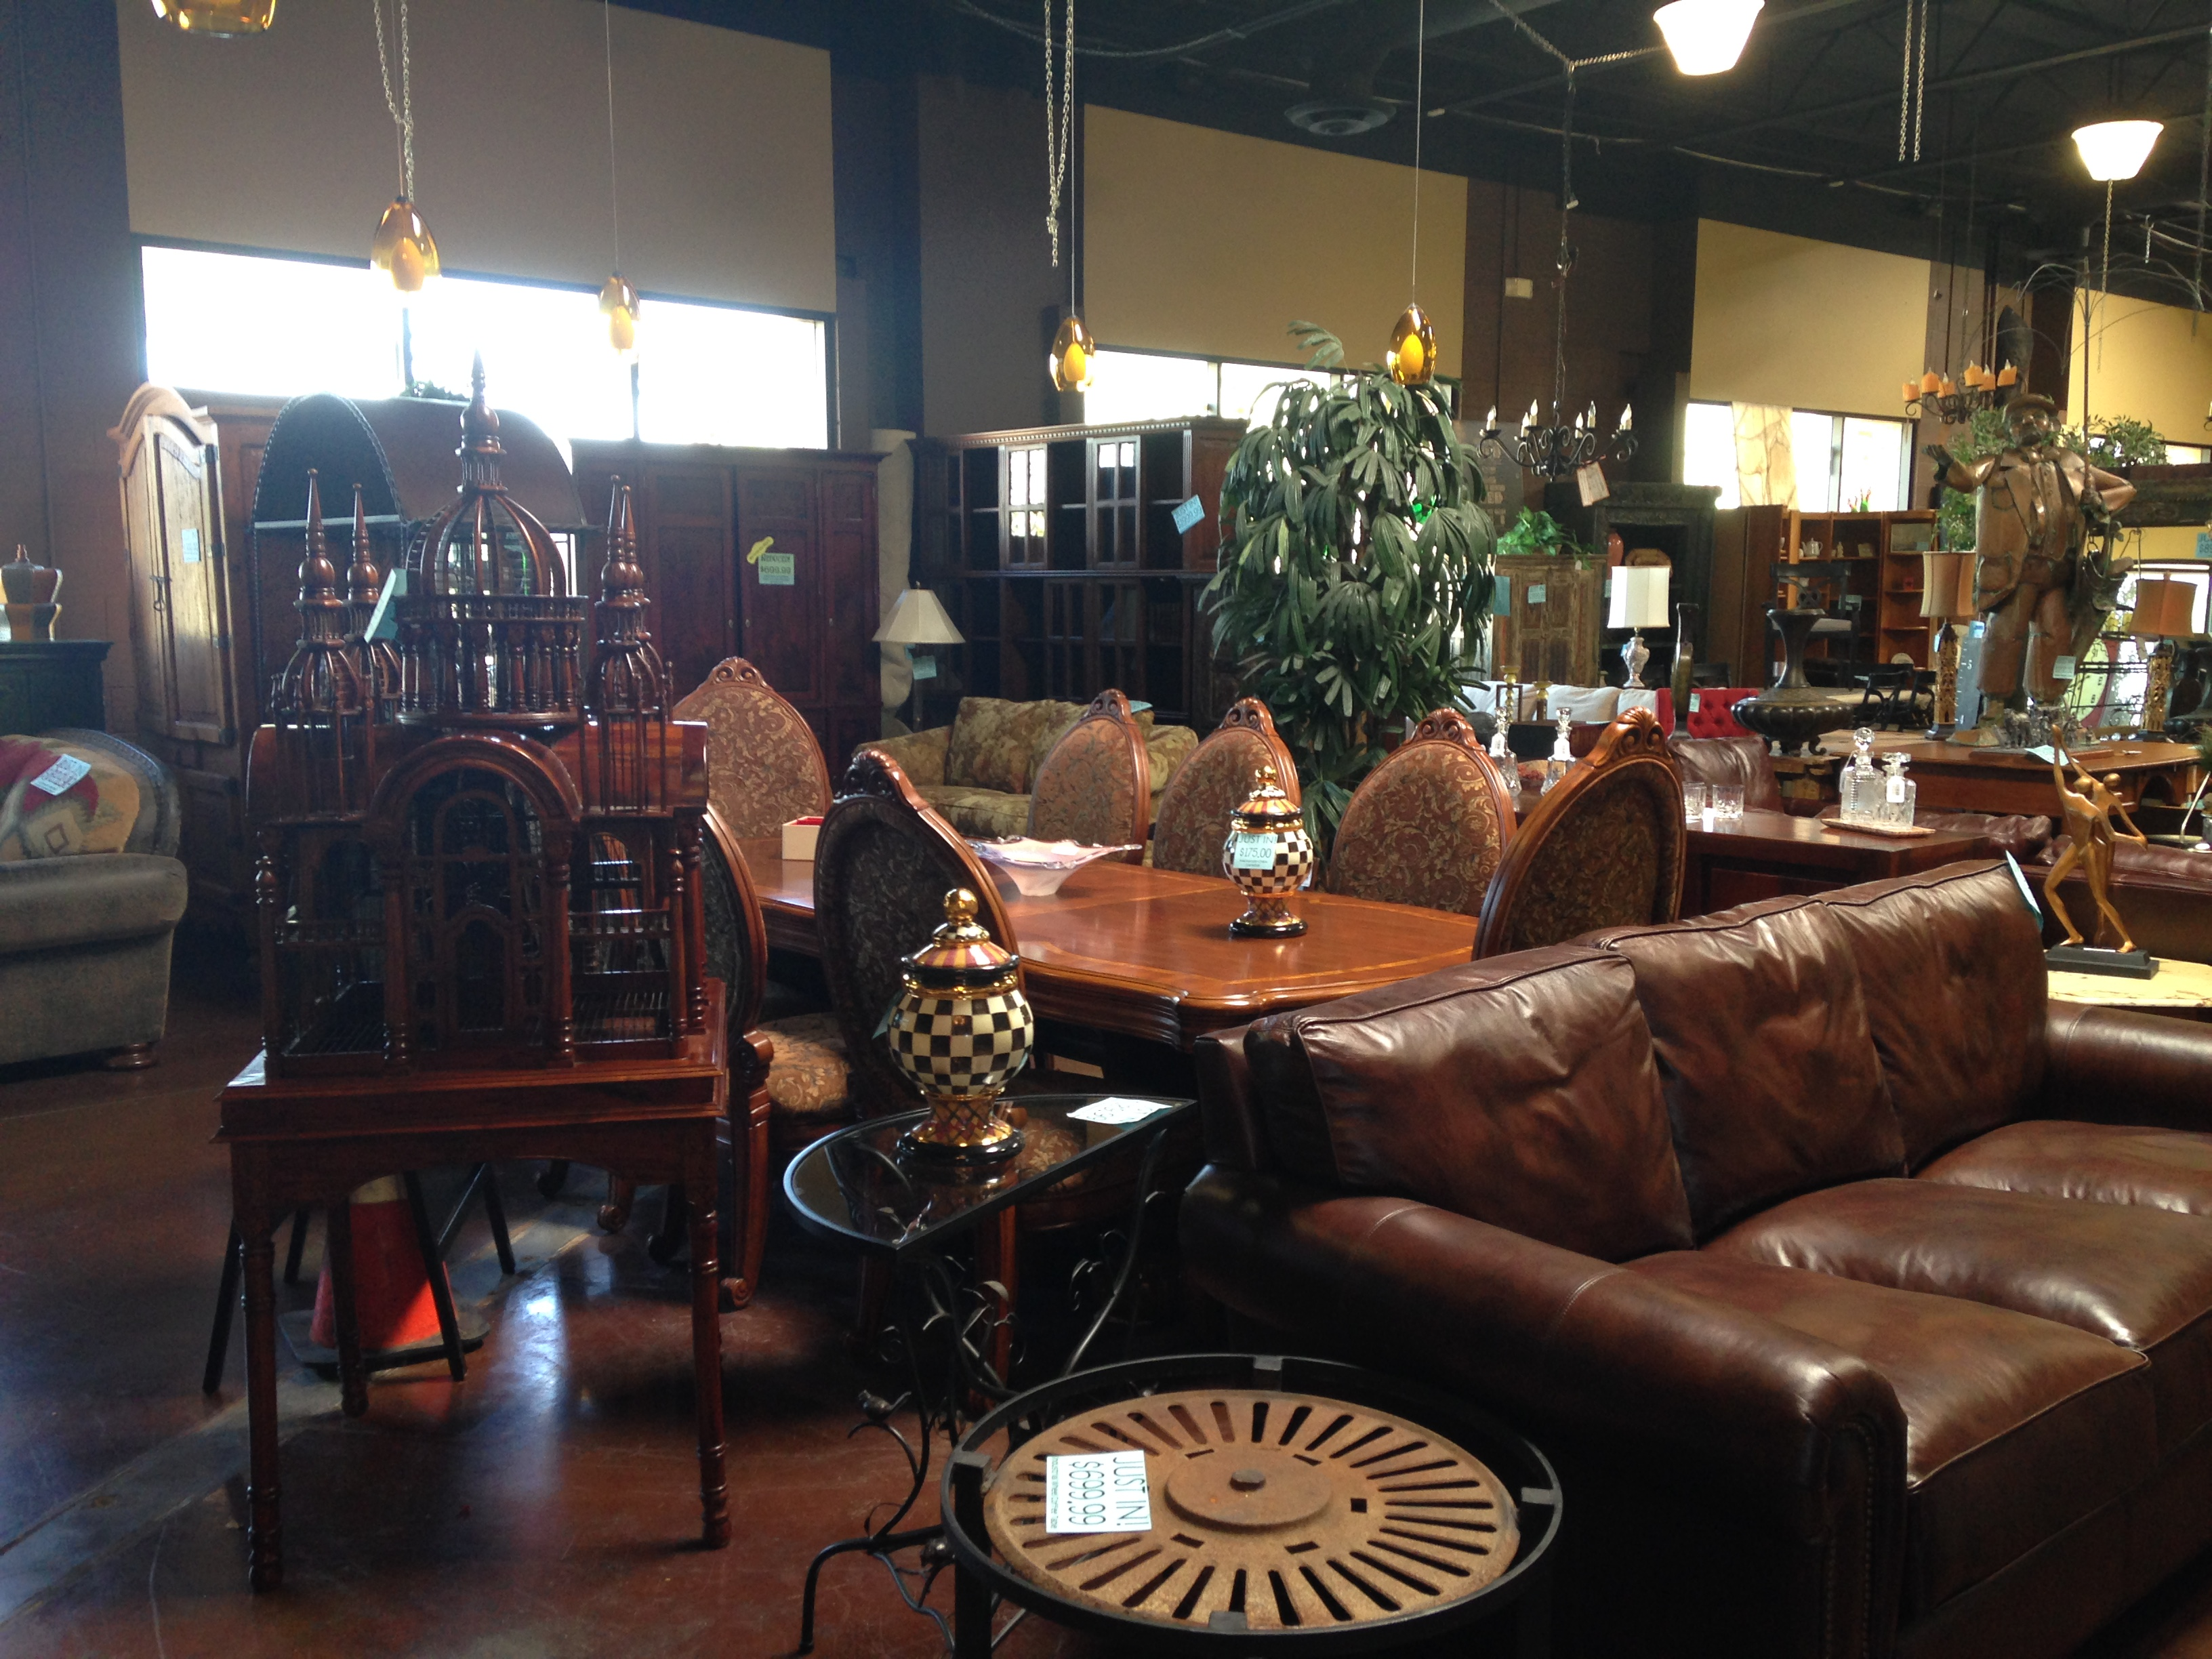 Consignment Furniture Used Furniture